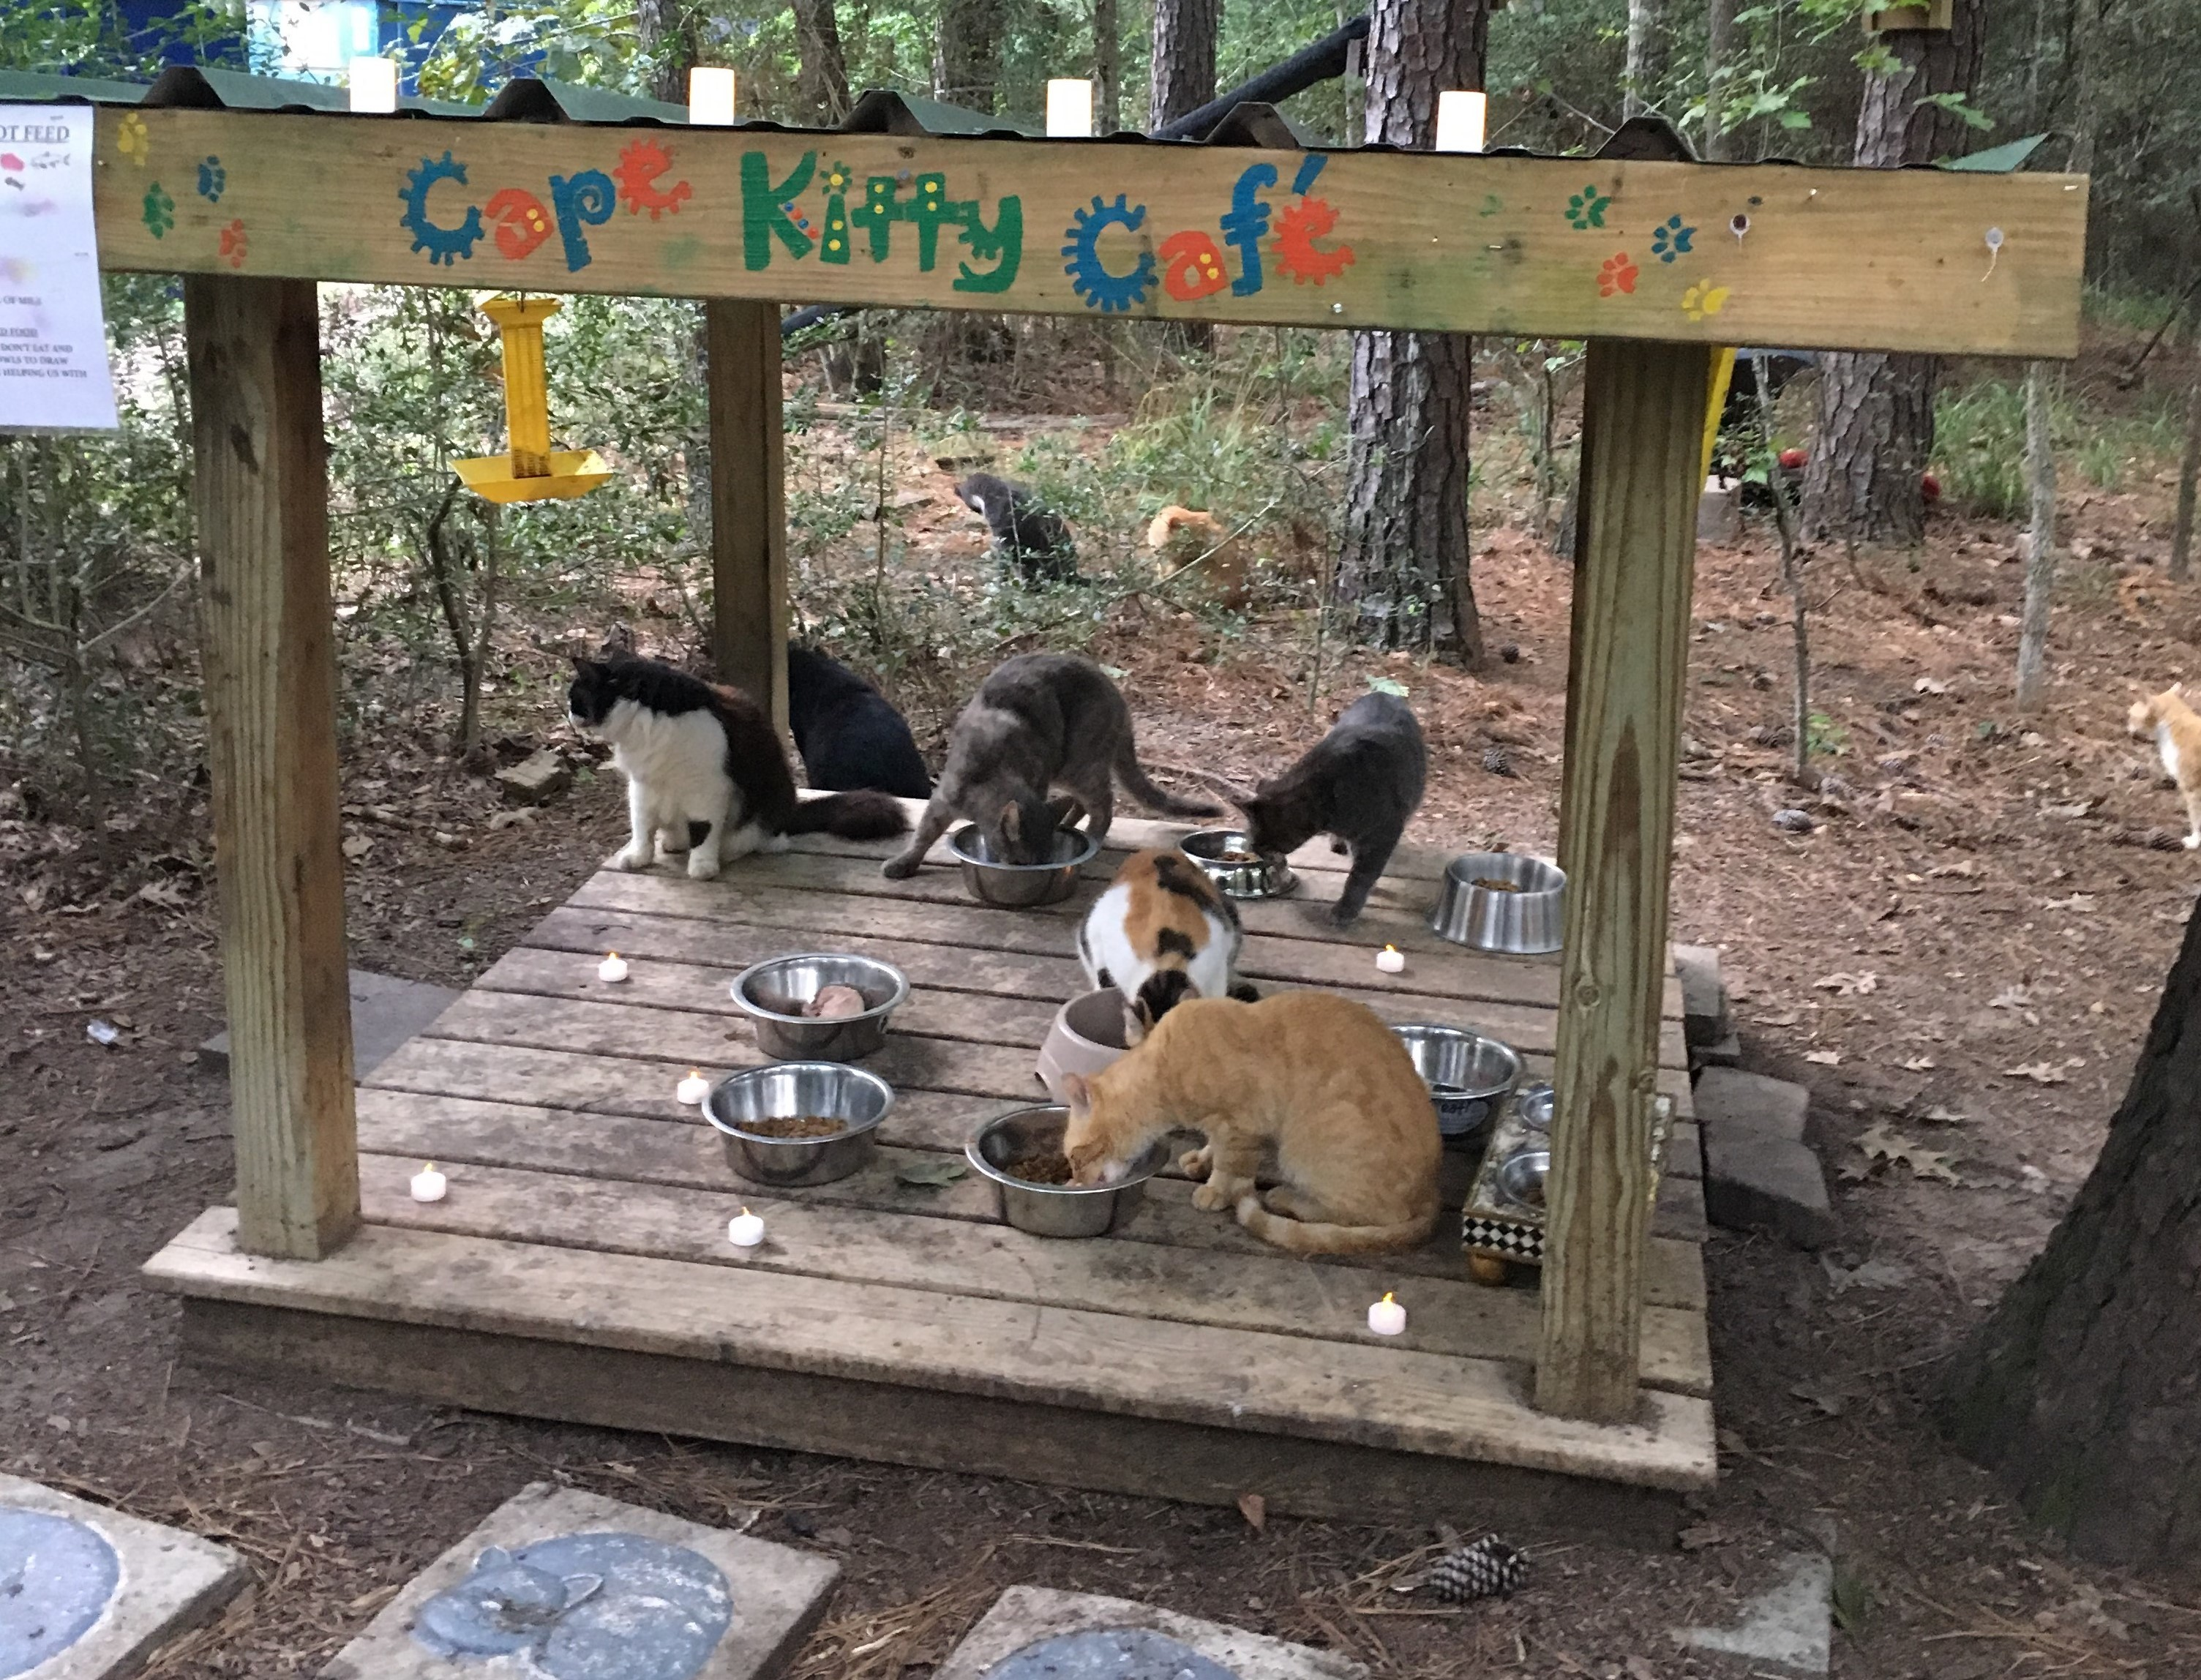 At Cape Kitty Cafe, cats are fed 2 times daily